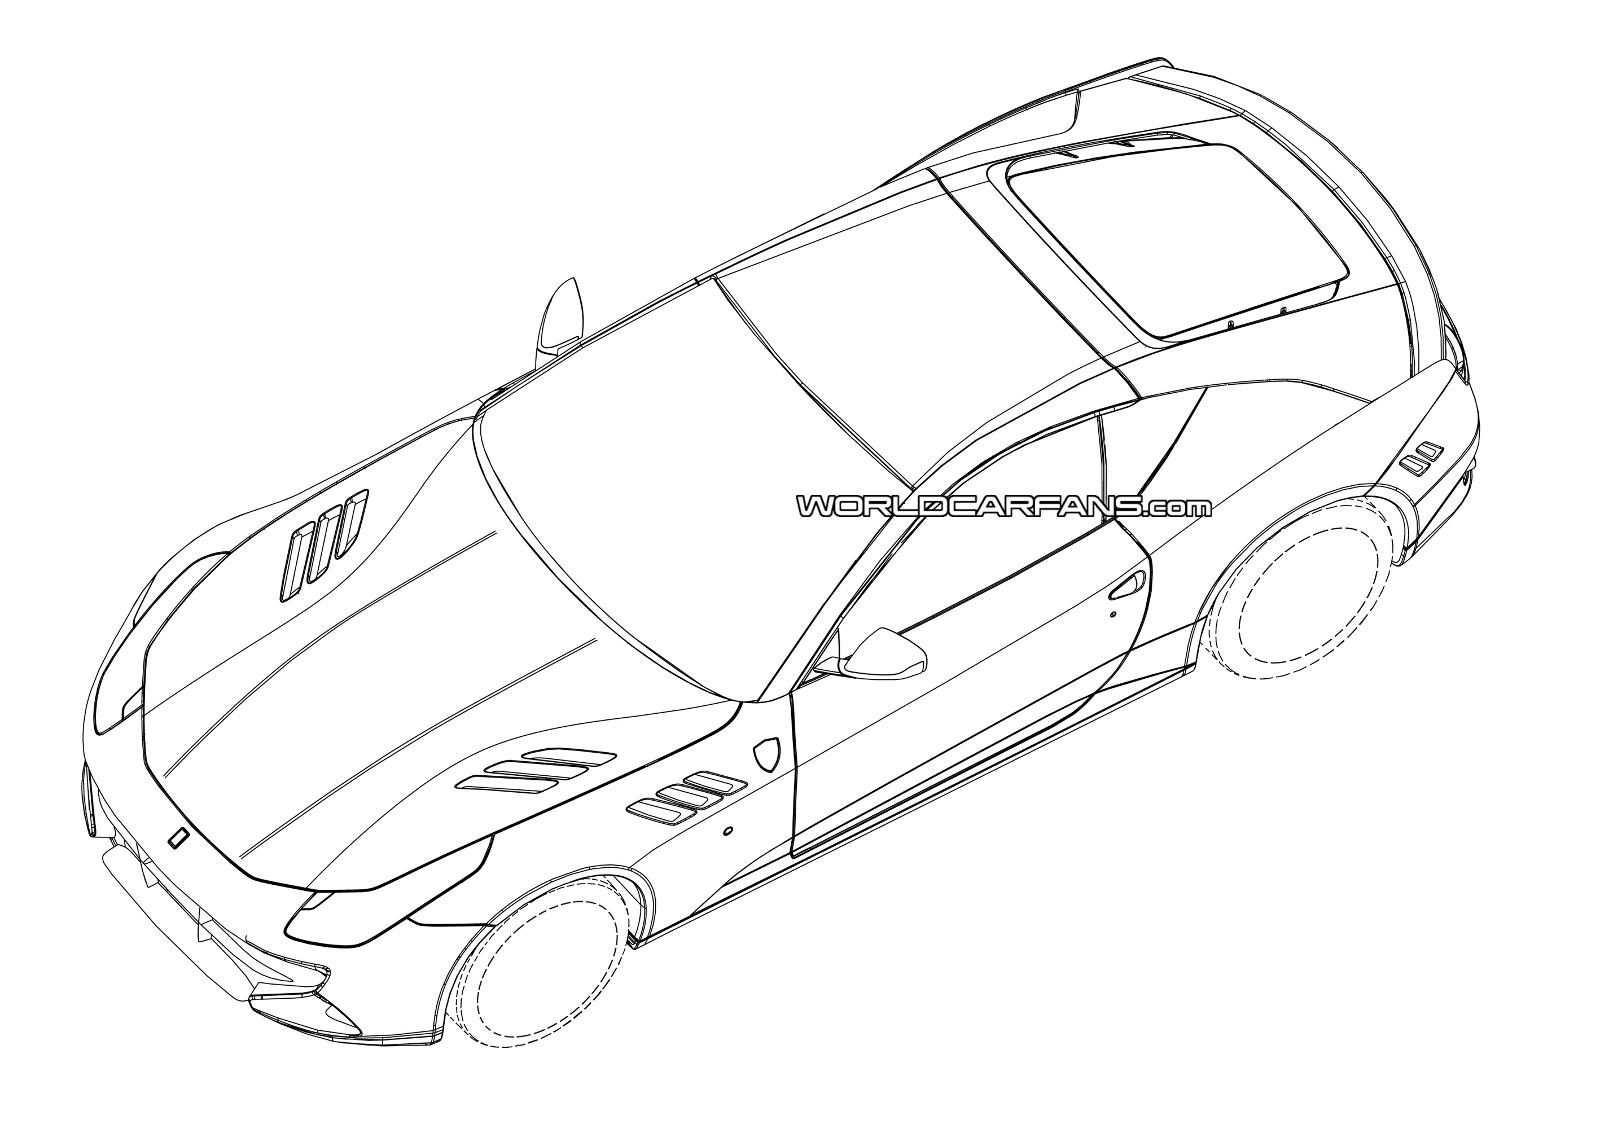 hight resolution of 1600x1133 2015 ferrari california replacement patent drawings leaked